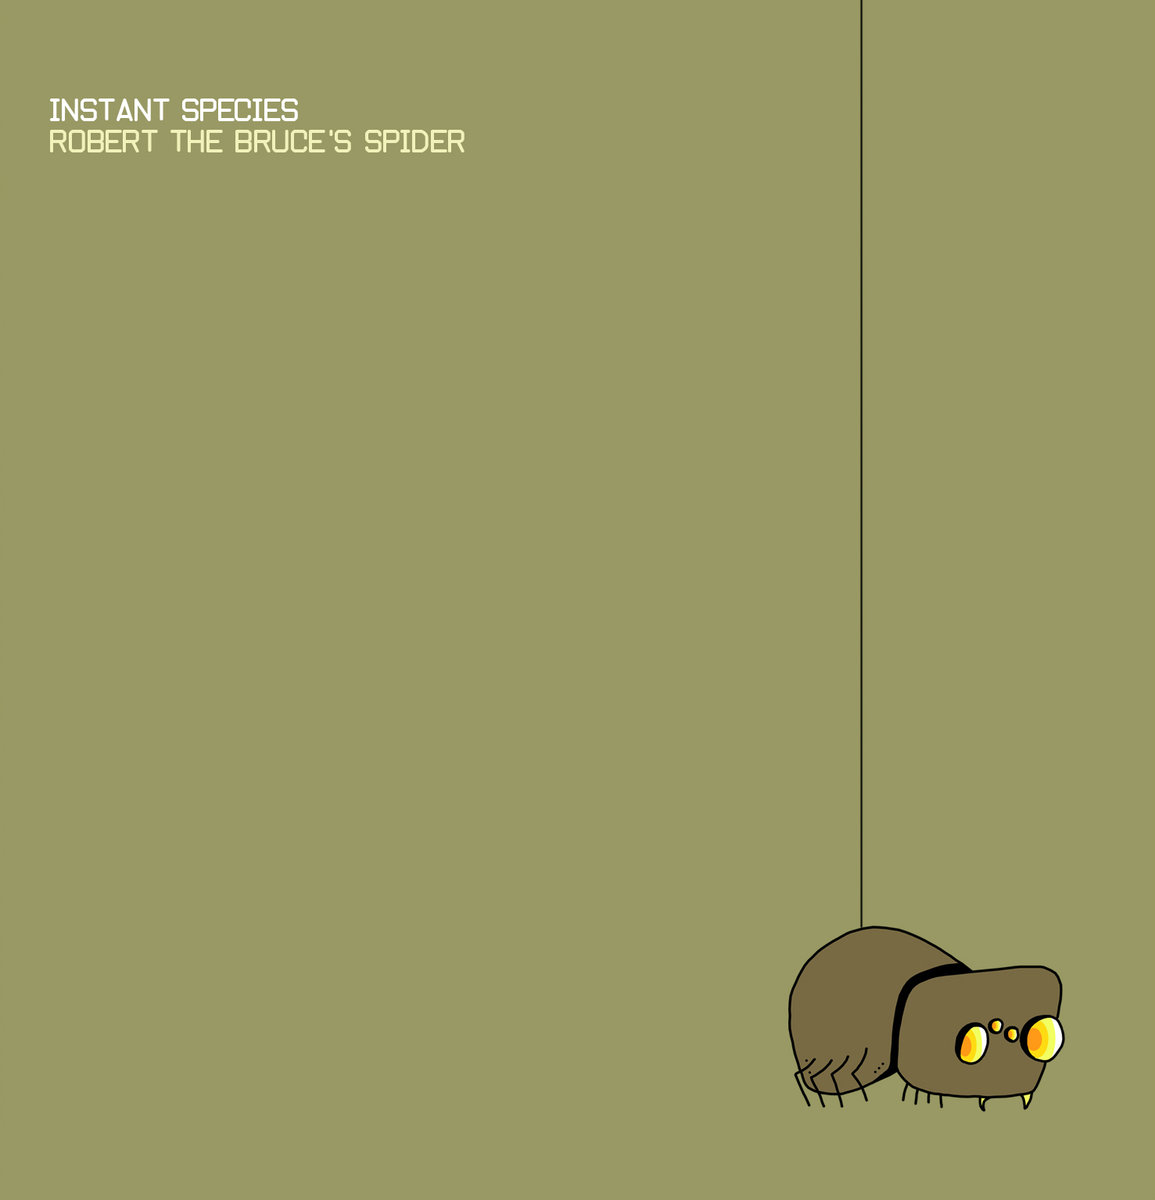 Cover of the Instant Species album Robert The Bruce's Spider